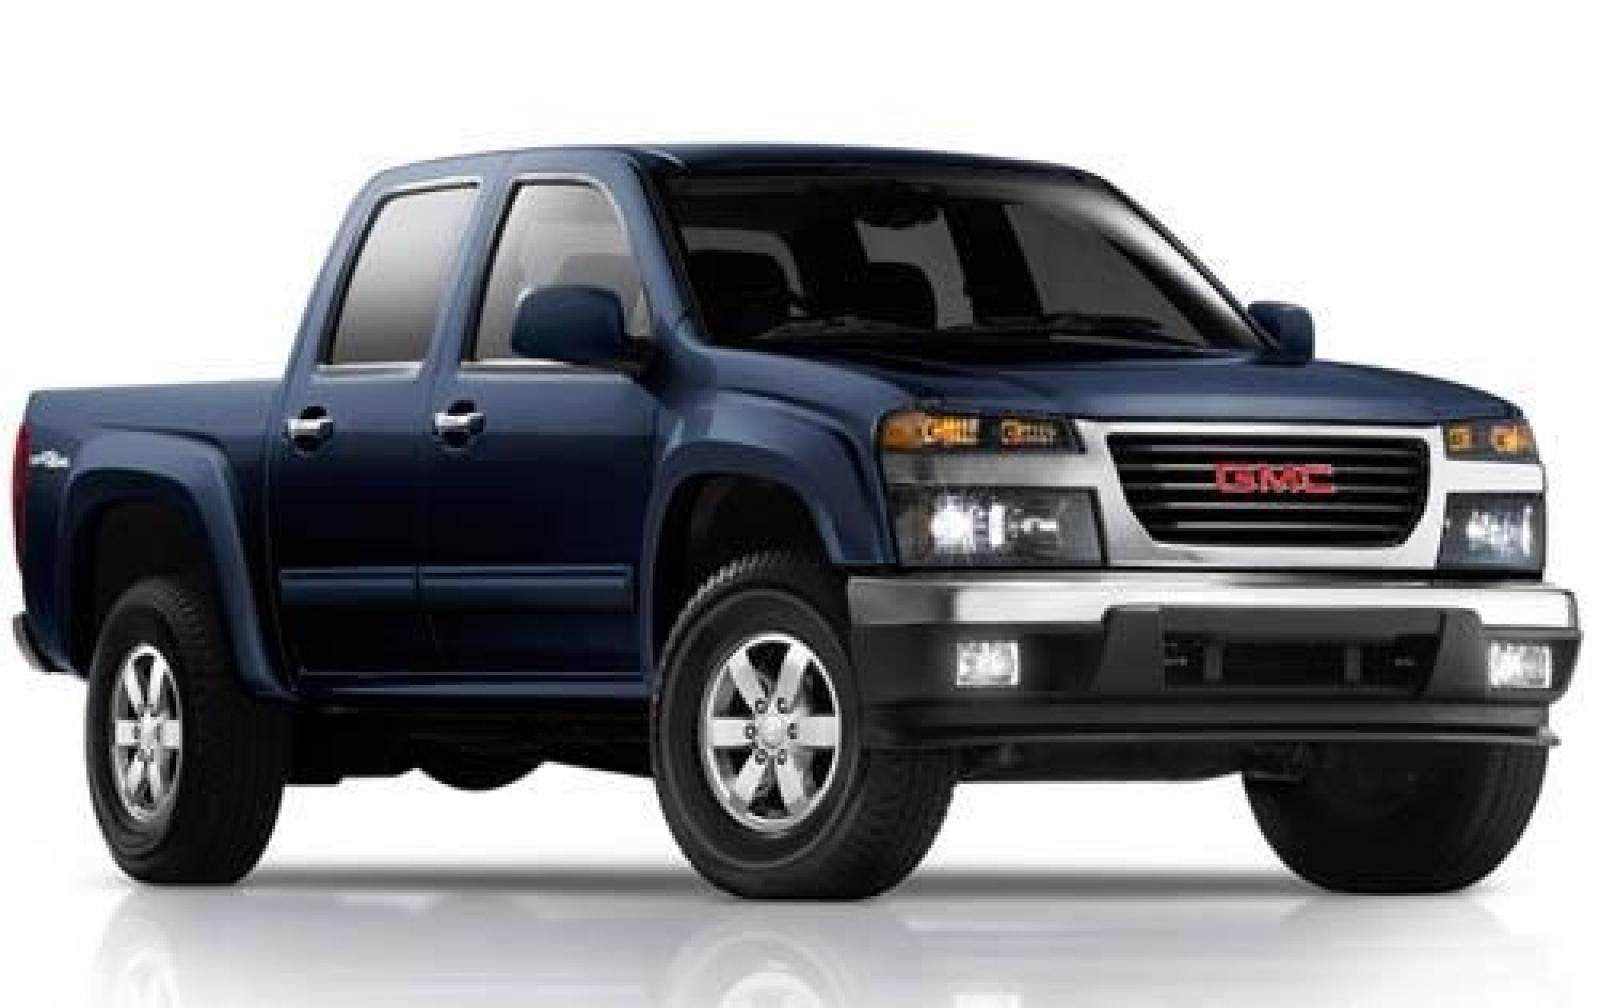 2012 gmc canyon information and photos zombiedrive. Black Bedroom Furniture Sets. Home Design Ideas